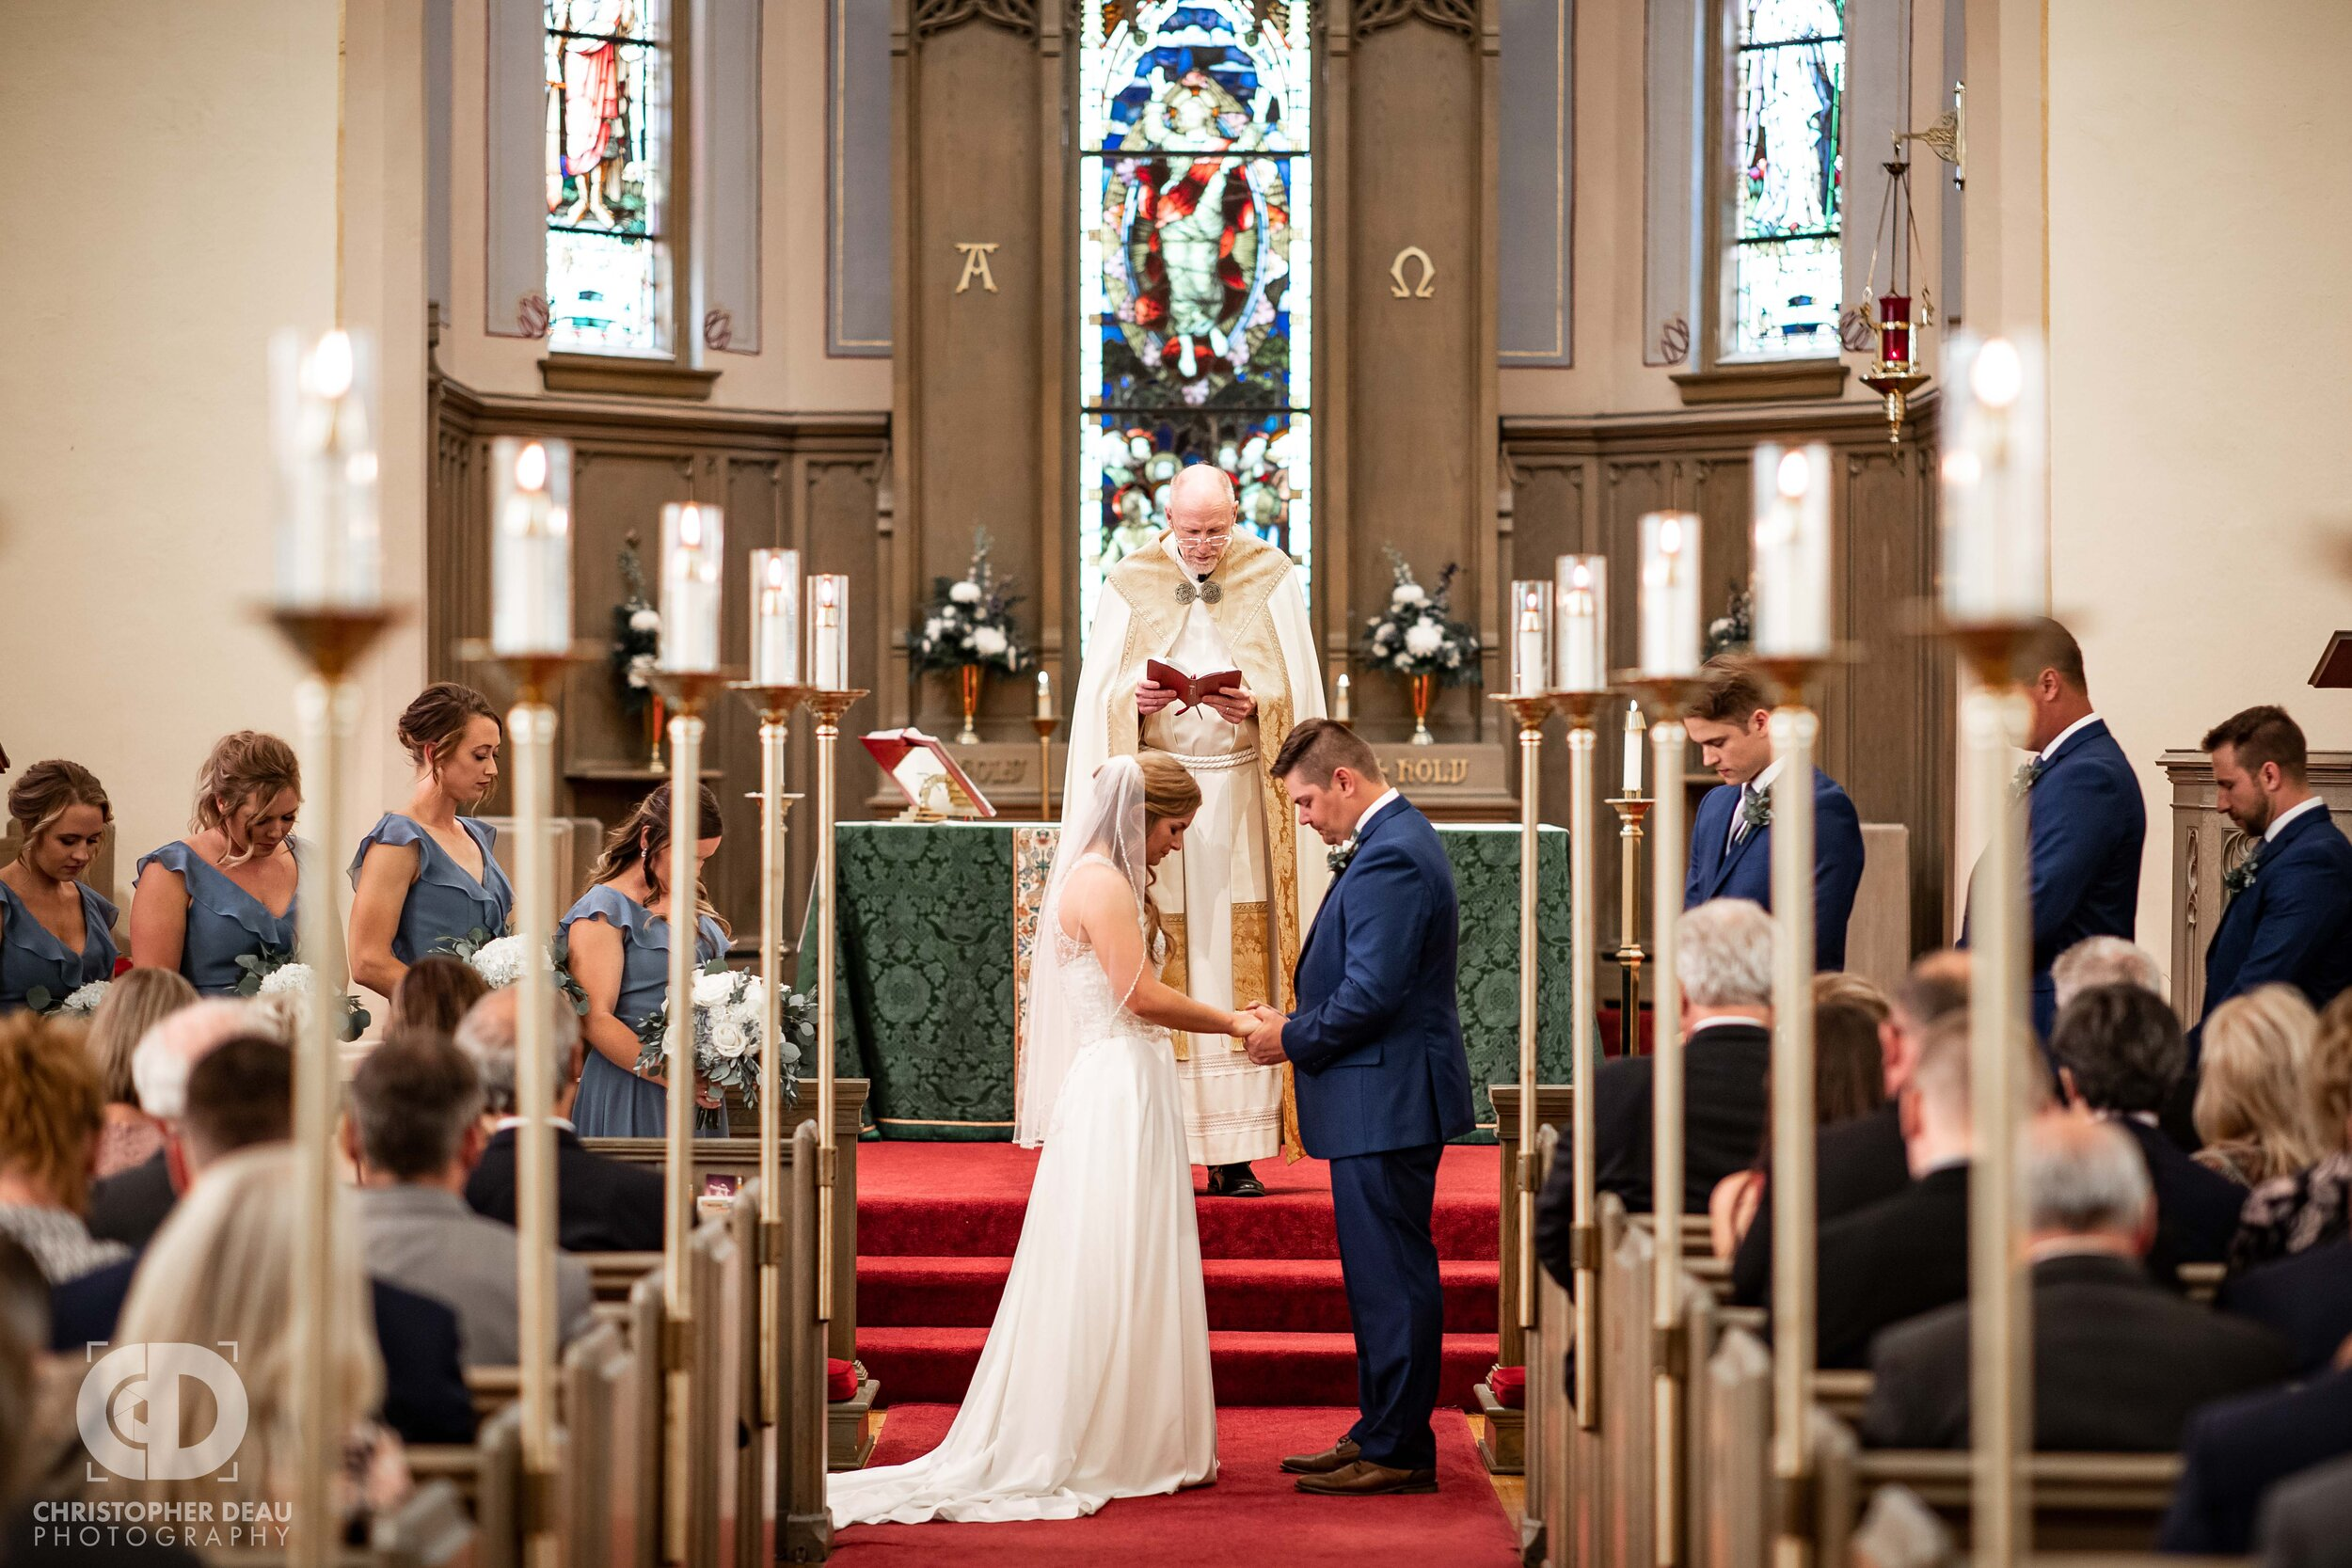 wedding ceremony at Trinity Lutheran Church in Kalamazoo, MI